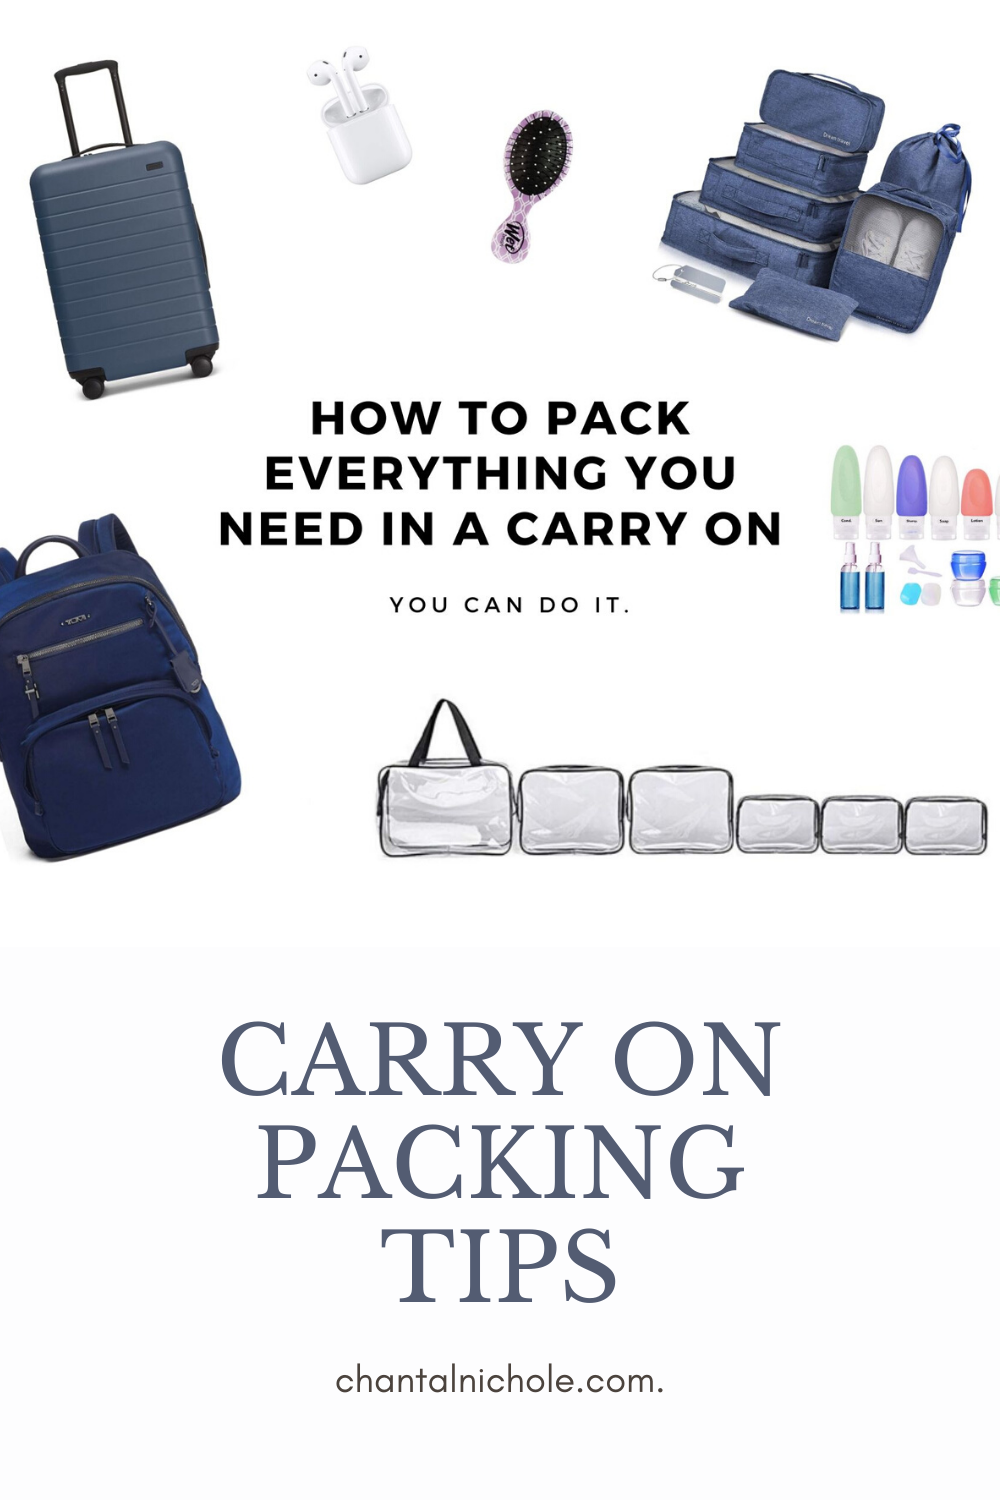 Learn the best tips and tricks for packing a carry on. All the essential items women need for a 2 week vacation. Travel to the best destinations with everything that you need! #carryon #packingtips #howtopack #organize #packlikeapro #travel #packing #pack